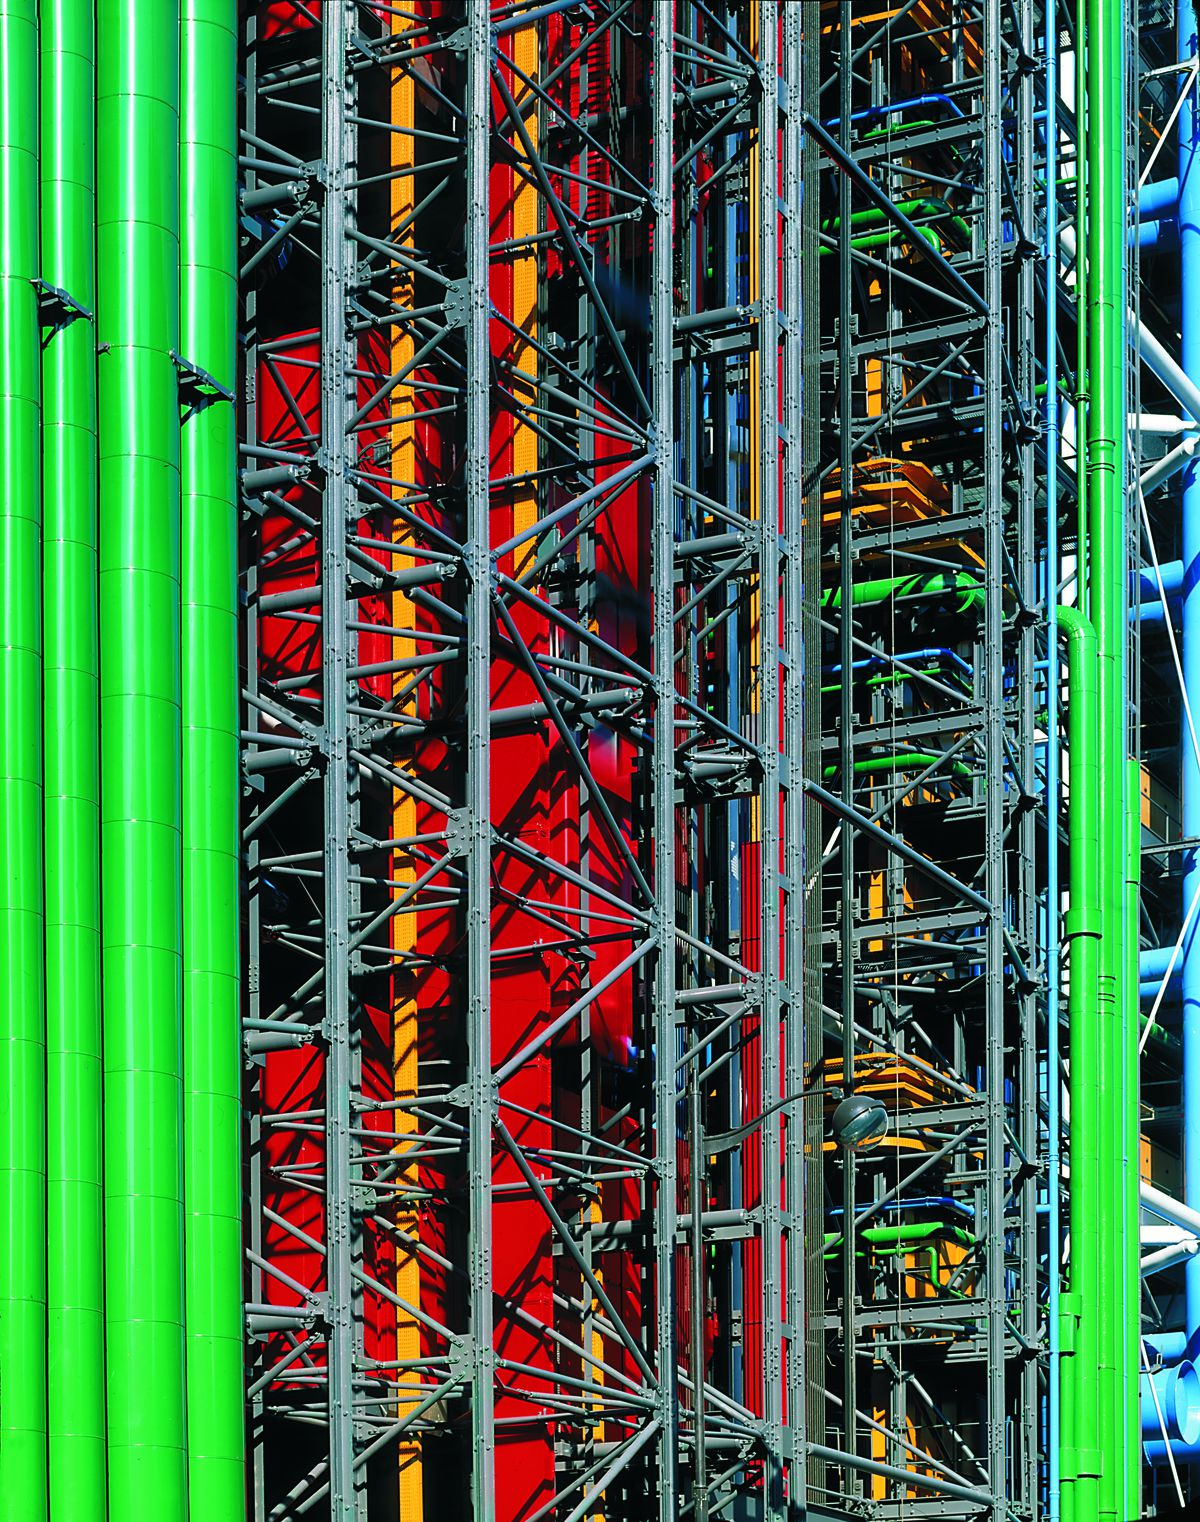 Centre Pompidou A Monument To Modernity 8 Things You Didnt Know House Wiring Diagram France Facade Of The Building On Rue Du Renard